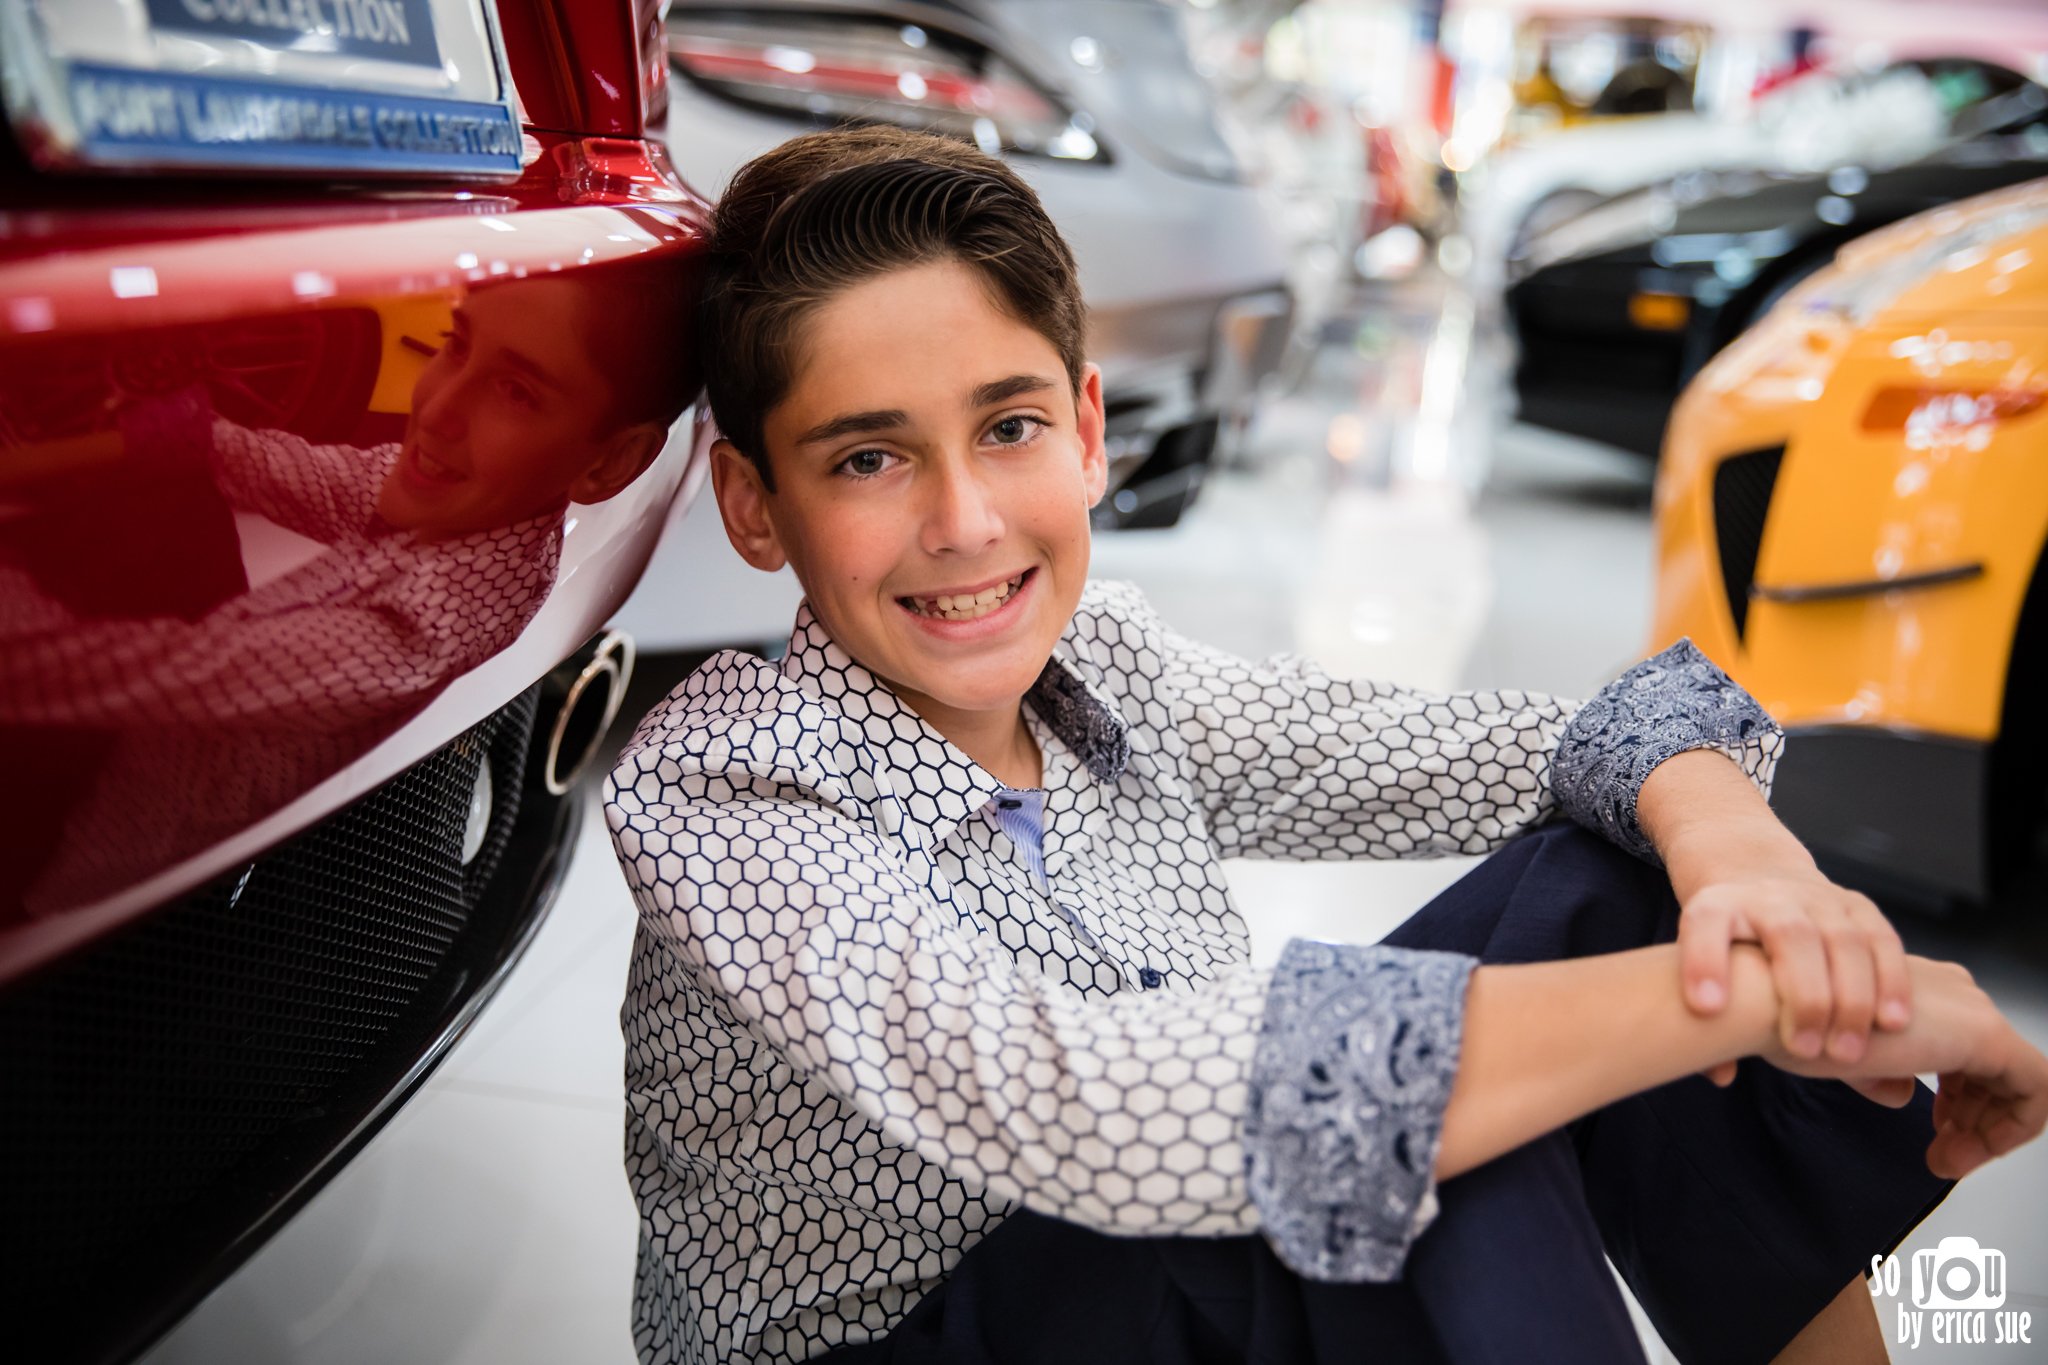 so-you-by-erica-sue-mitzvah-photographer-collection-luxury-car-ft-lauderdale-5049.jpg